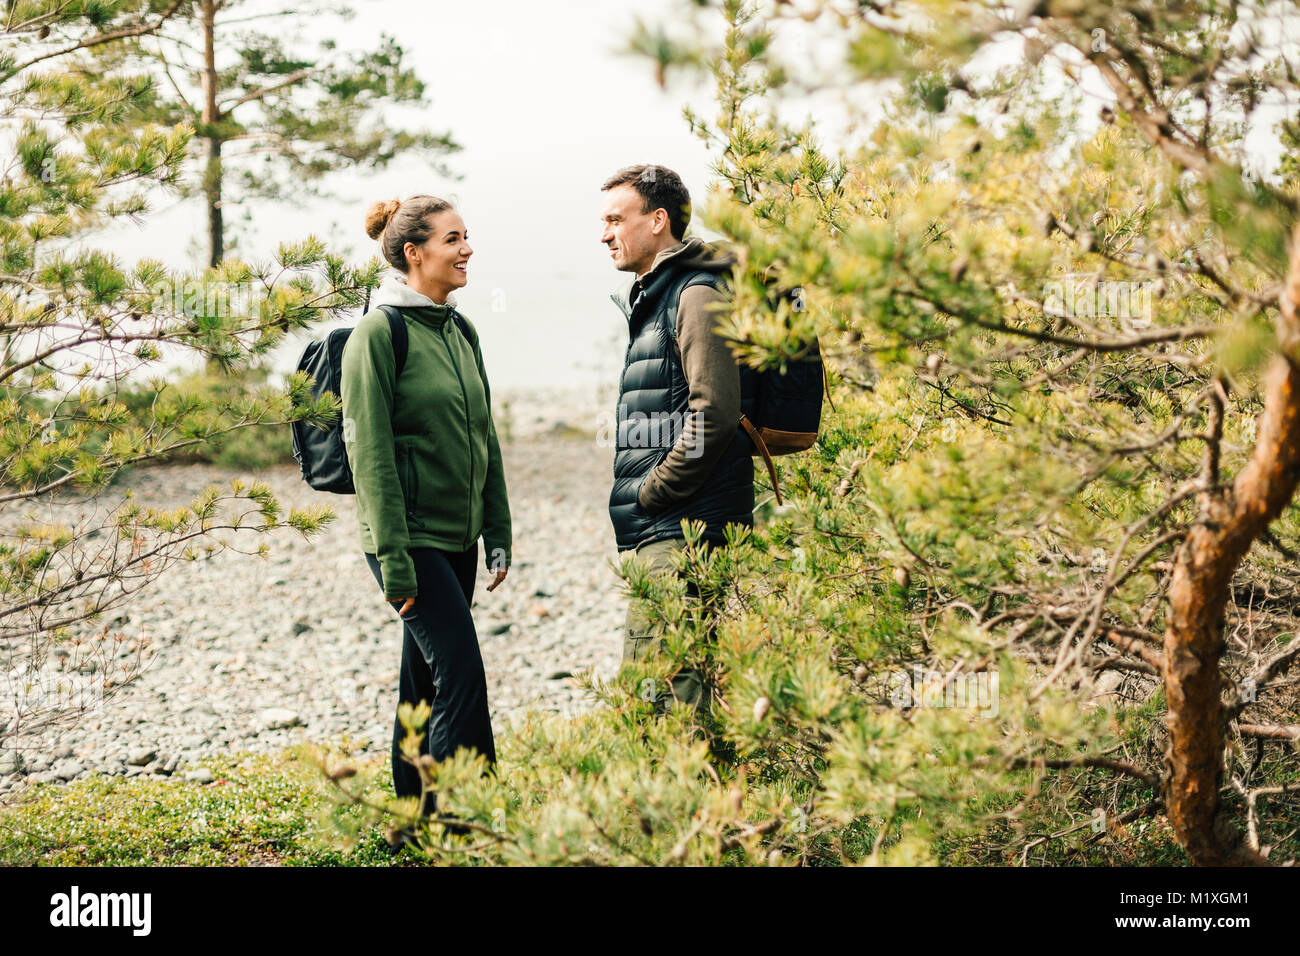 Hiking couples in Sodermanland, Sweden - Stock Image